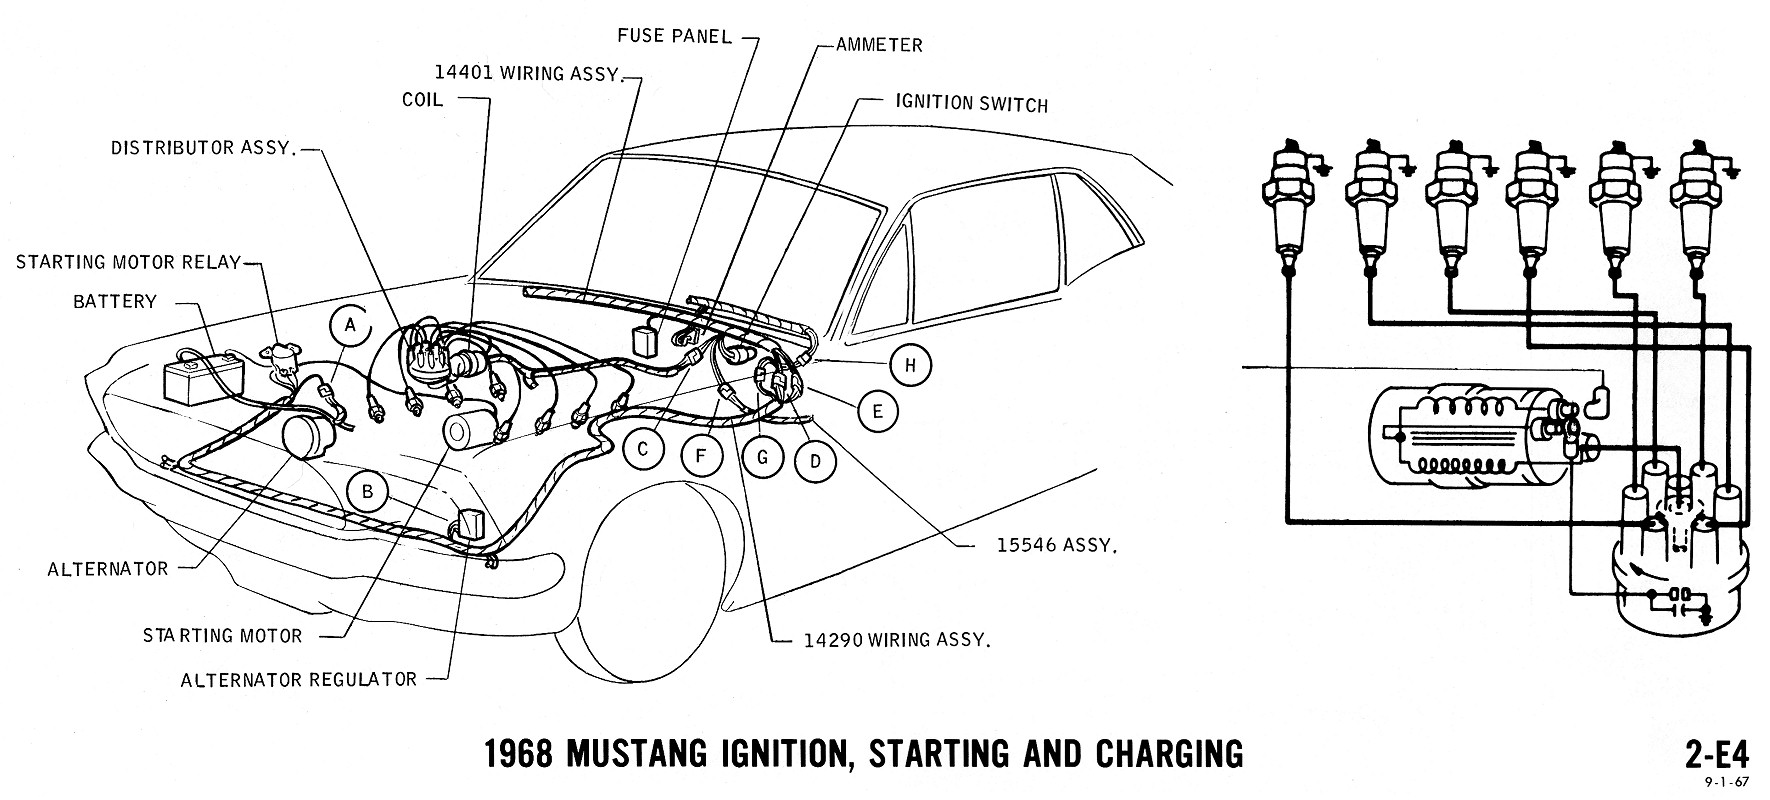 1968 mustang wiring diagram ignition starting charging 2 1968 mustang wiring diagrams and vacuum schematics average joe 67 mustang complete wiring harness at bayanpartner.co